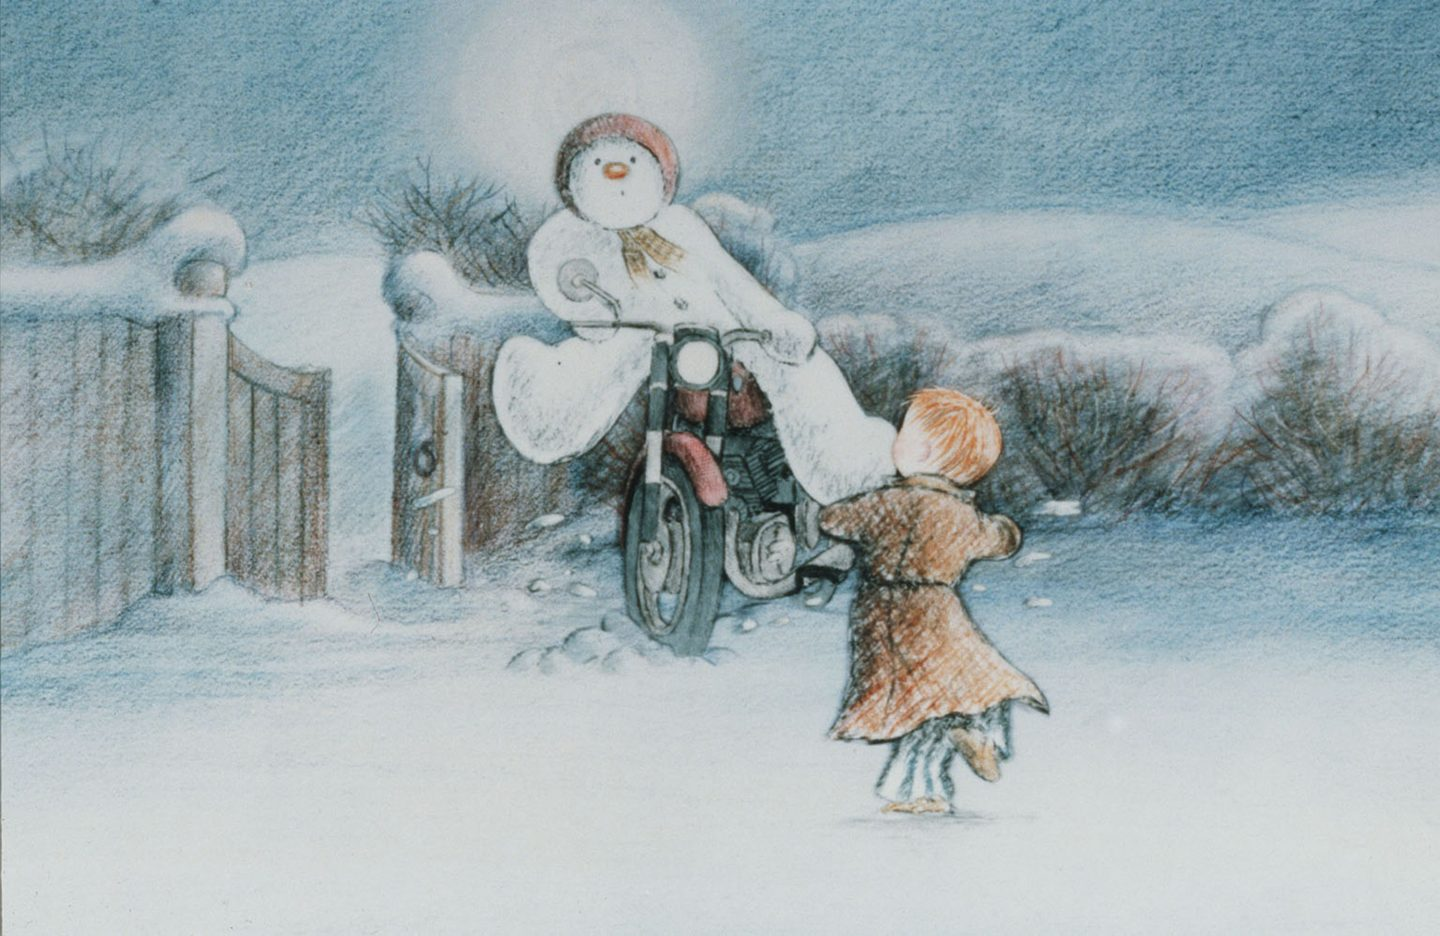 Snowman on a motorcycle. From The Snowman (1982).